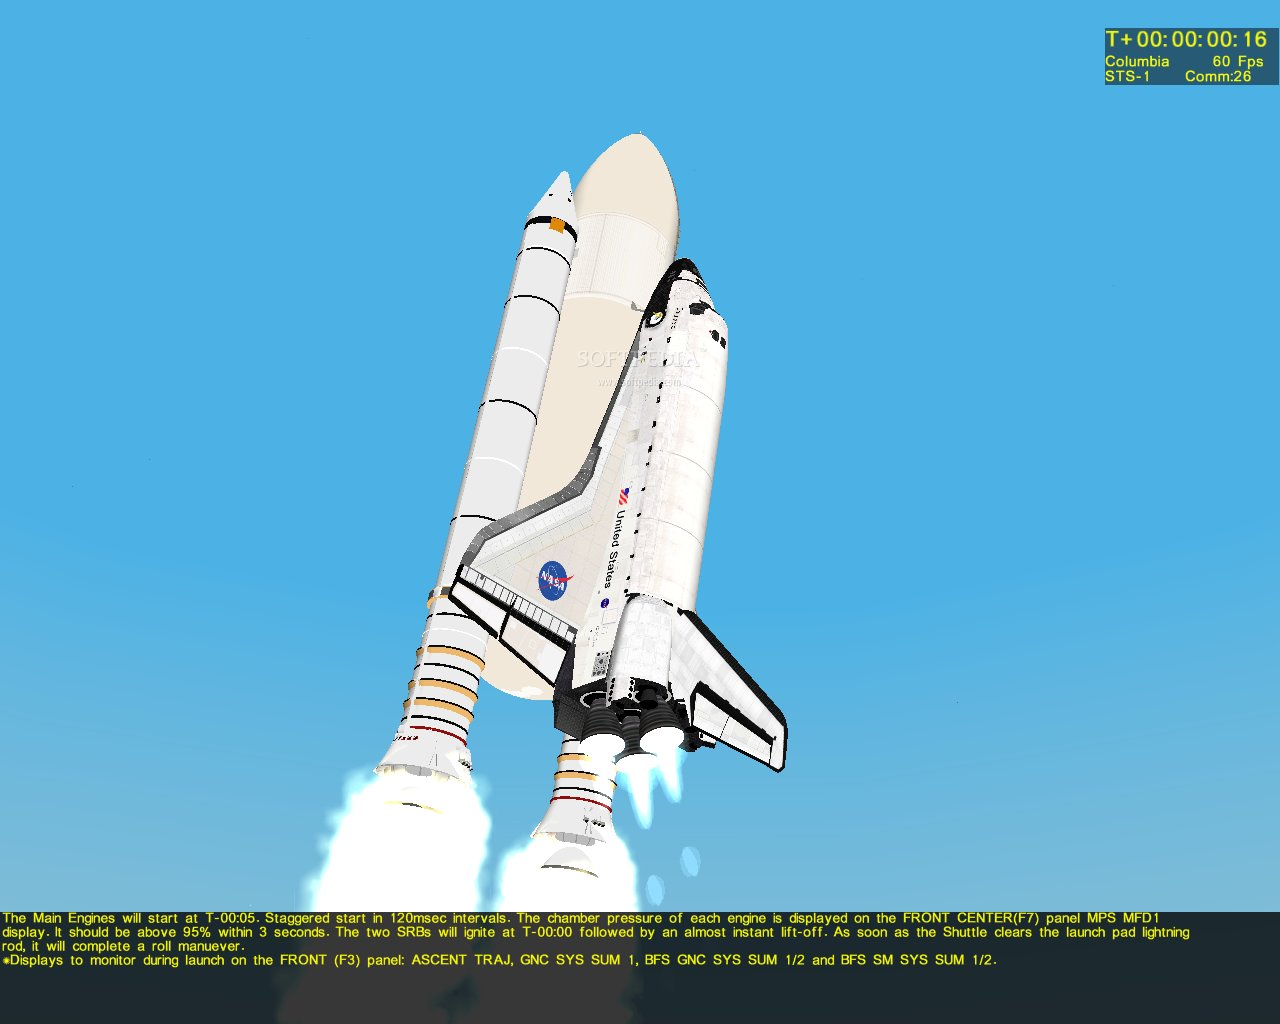 Screenshot 7 of Space Shuttle Mission 2007 Demo.